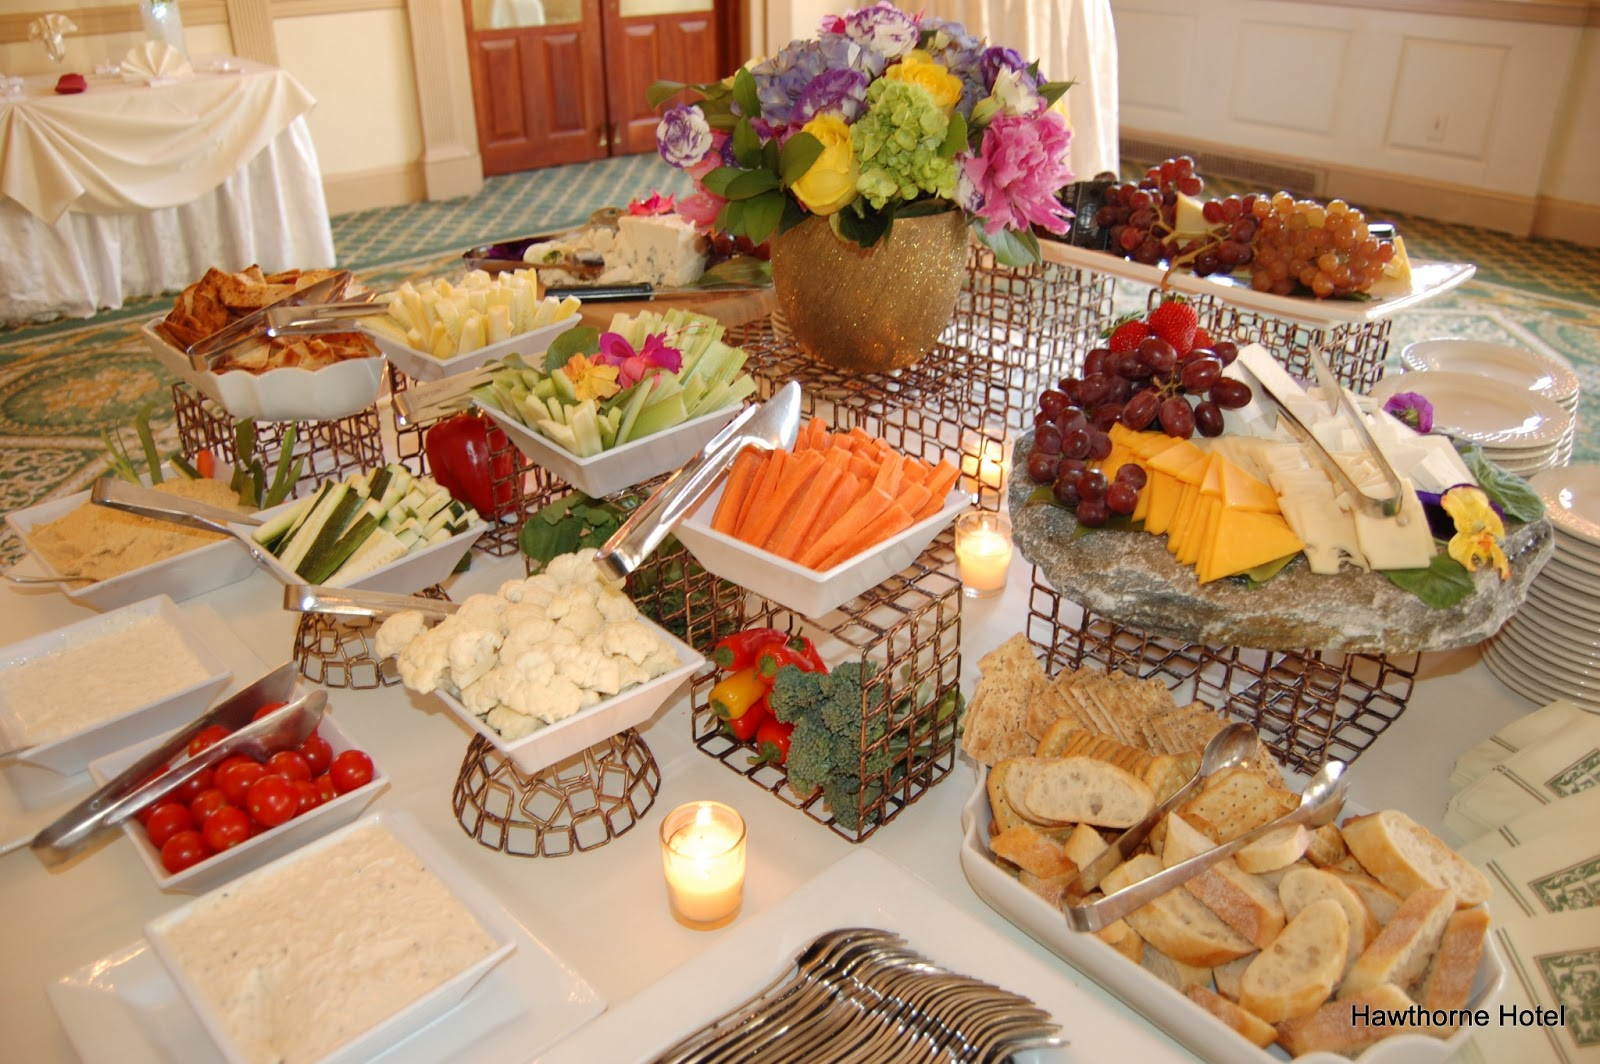 One way to reduce the cost of food for your wedding reception is to serve inexpensive but tasty appetizers. This is a guide about inexpensive wedding appetizers.